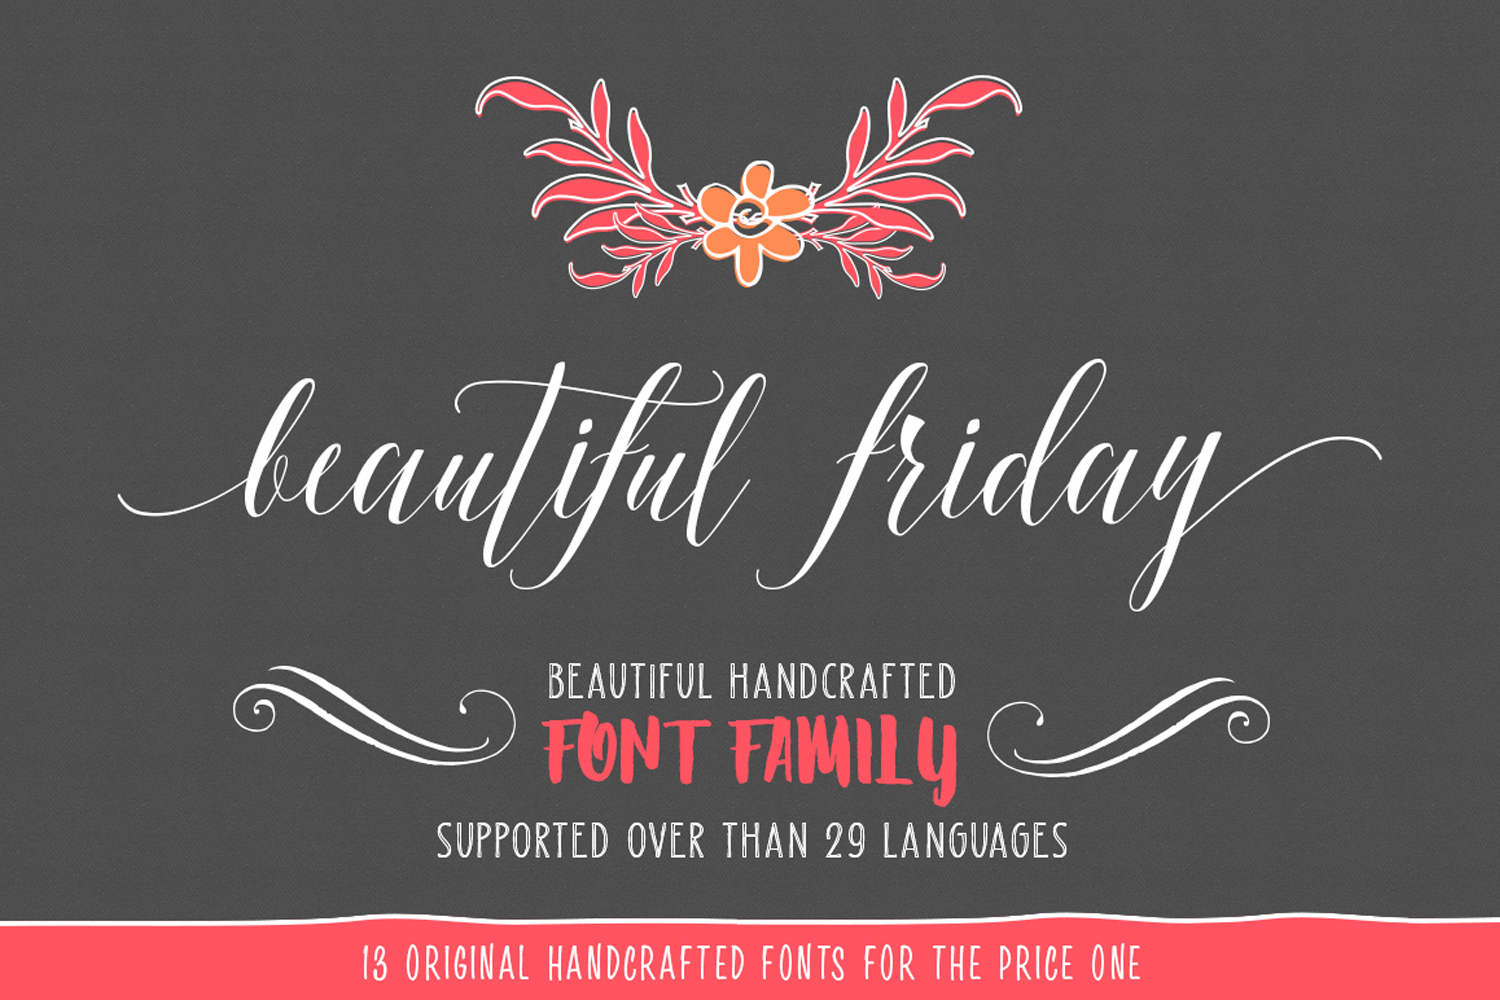 Beautiful friday (13 Fonts) example image 2